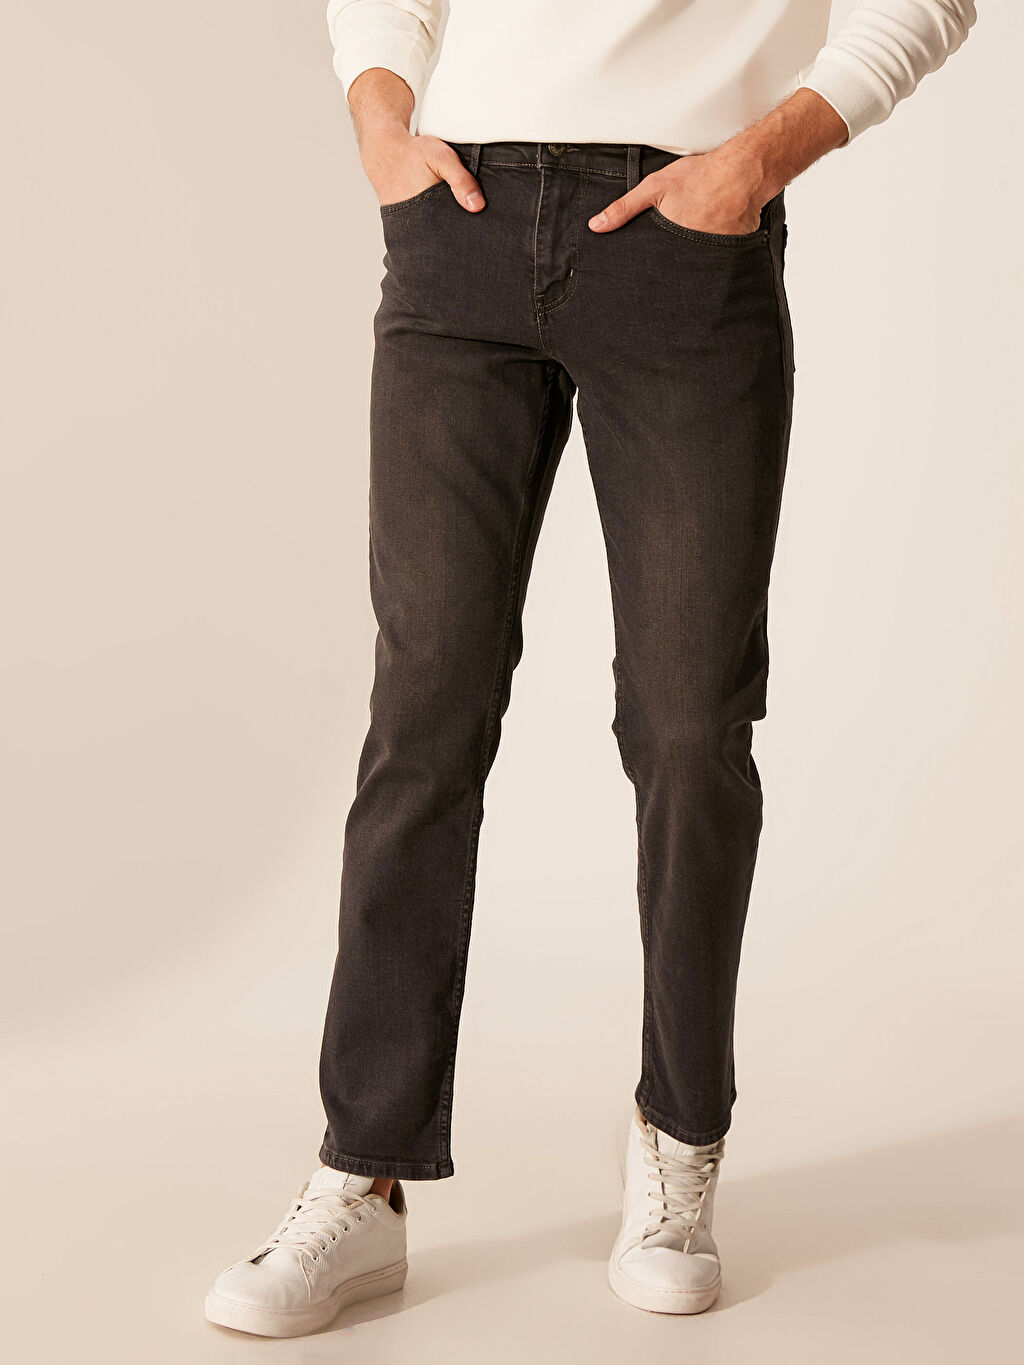 Erkek 879 Regular Fit Jean Pantolon